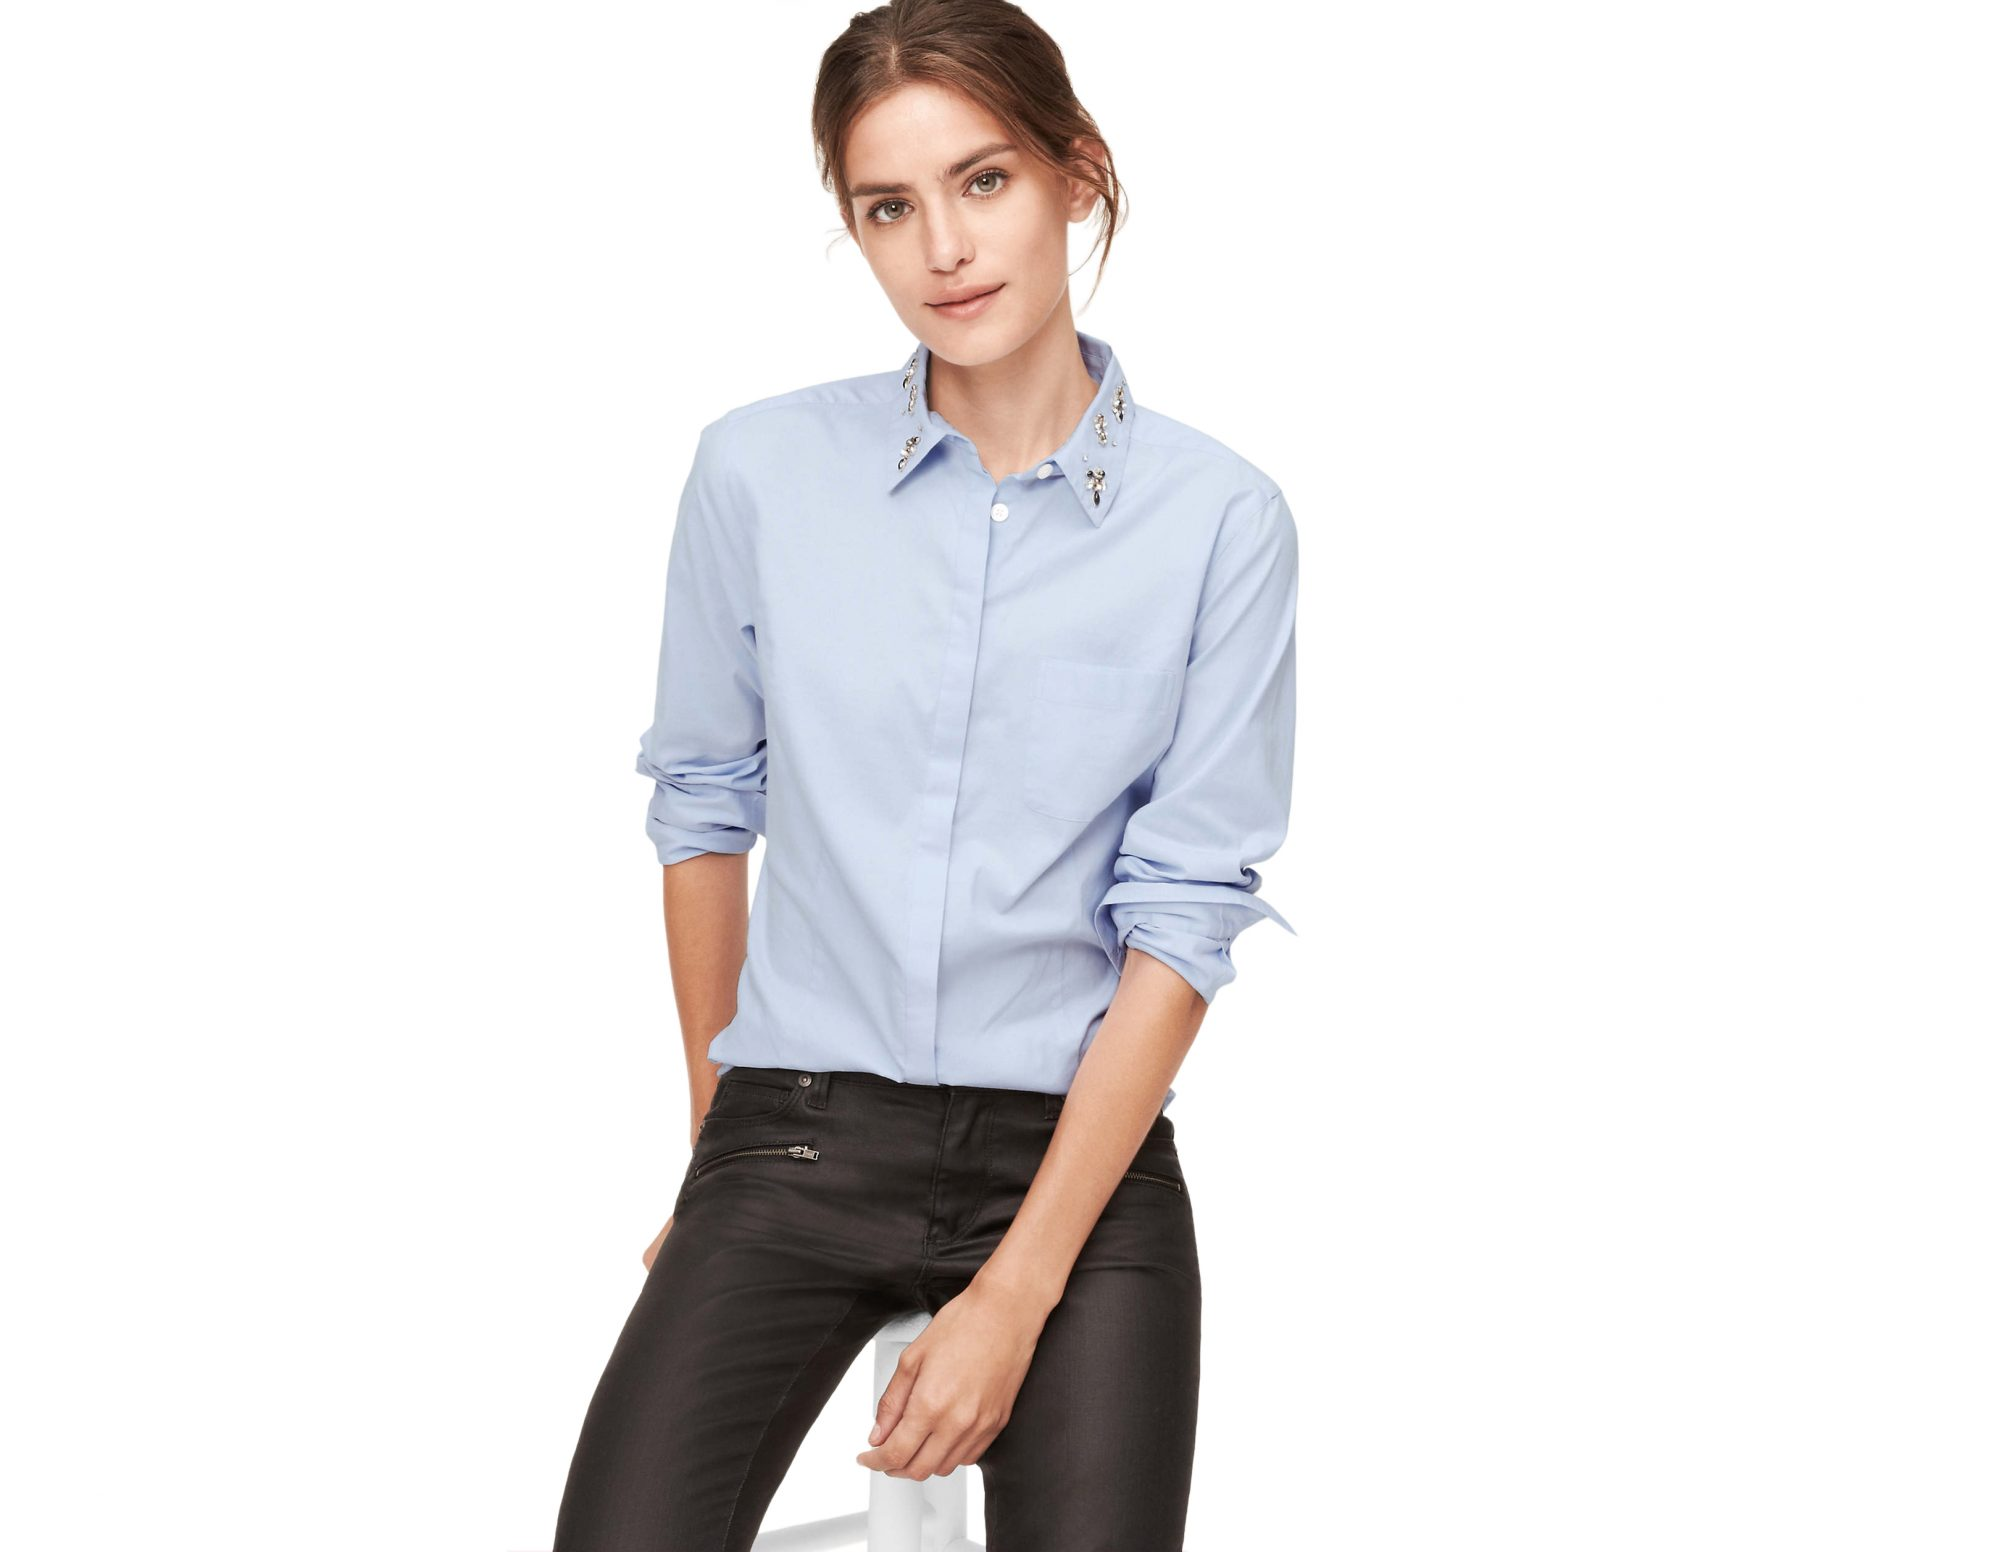 Loft Jeweled Collar Oxford Shirt